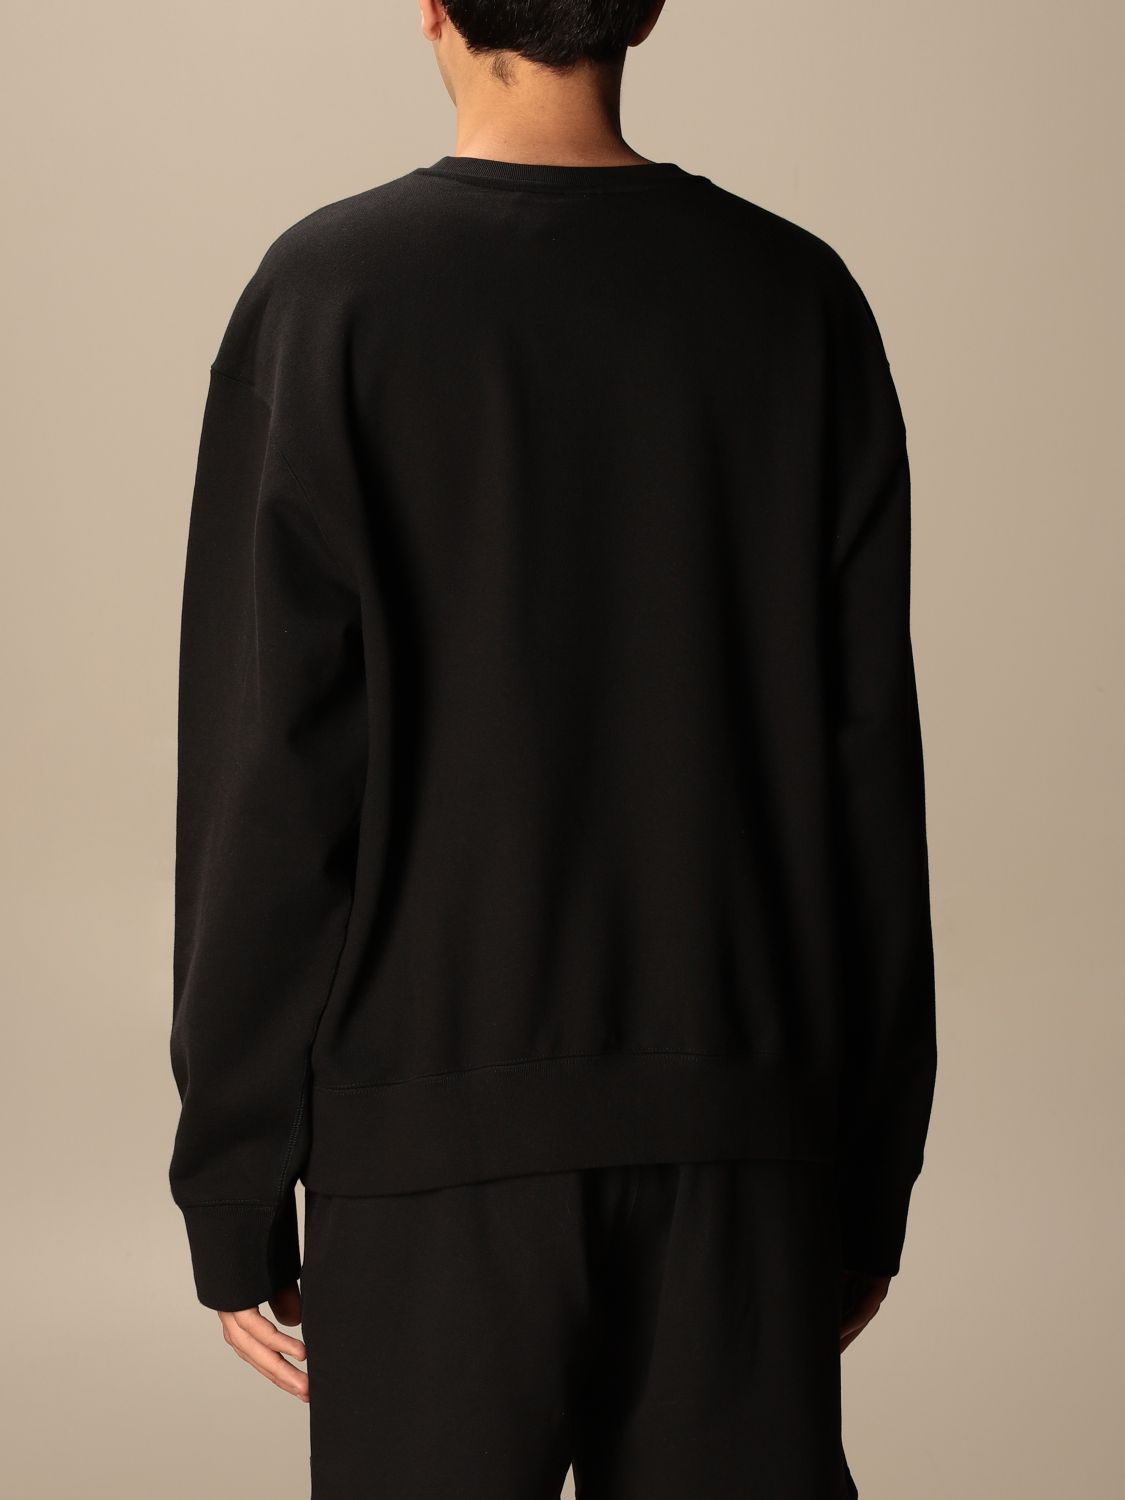 Sweatshirt Adidas Originals: Sweatshirt men Adidas Originals black 2